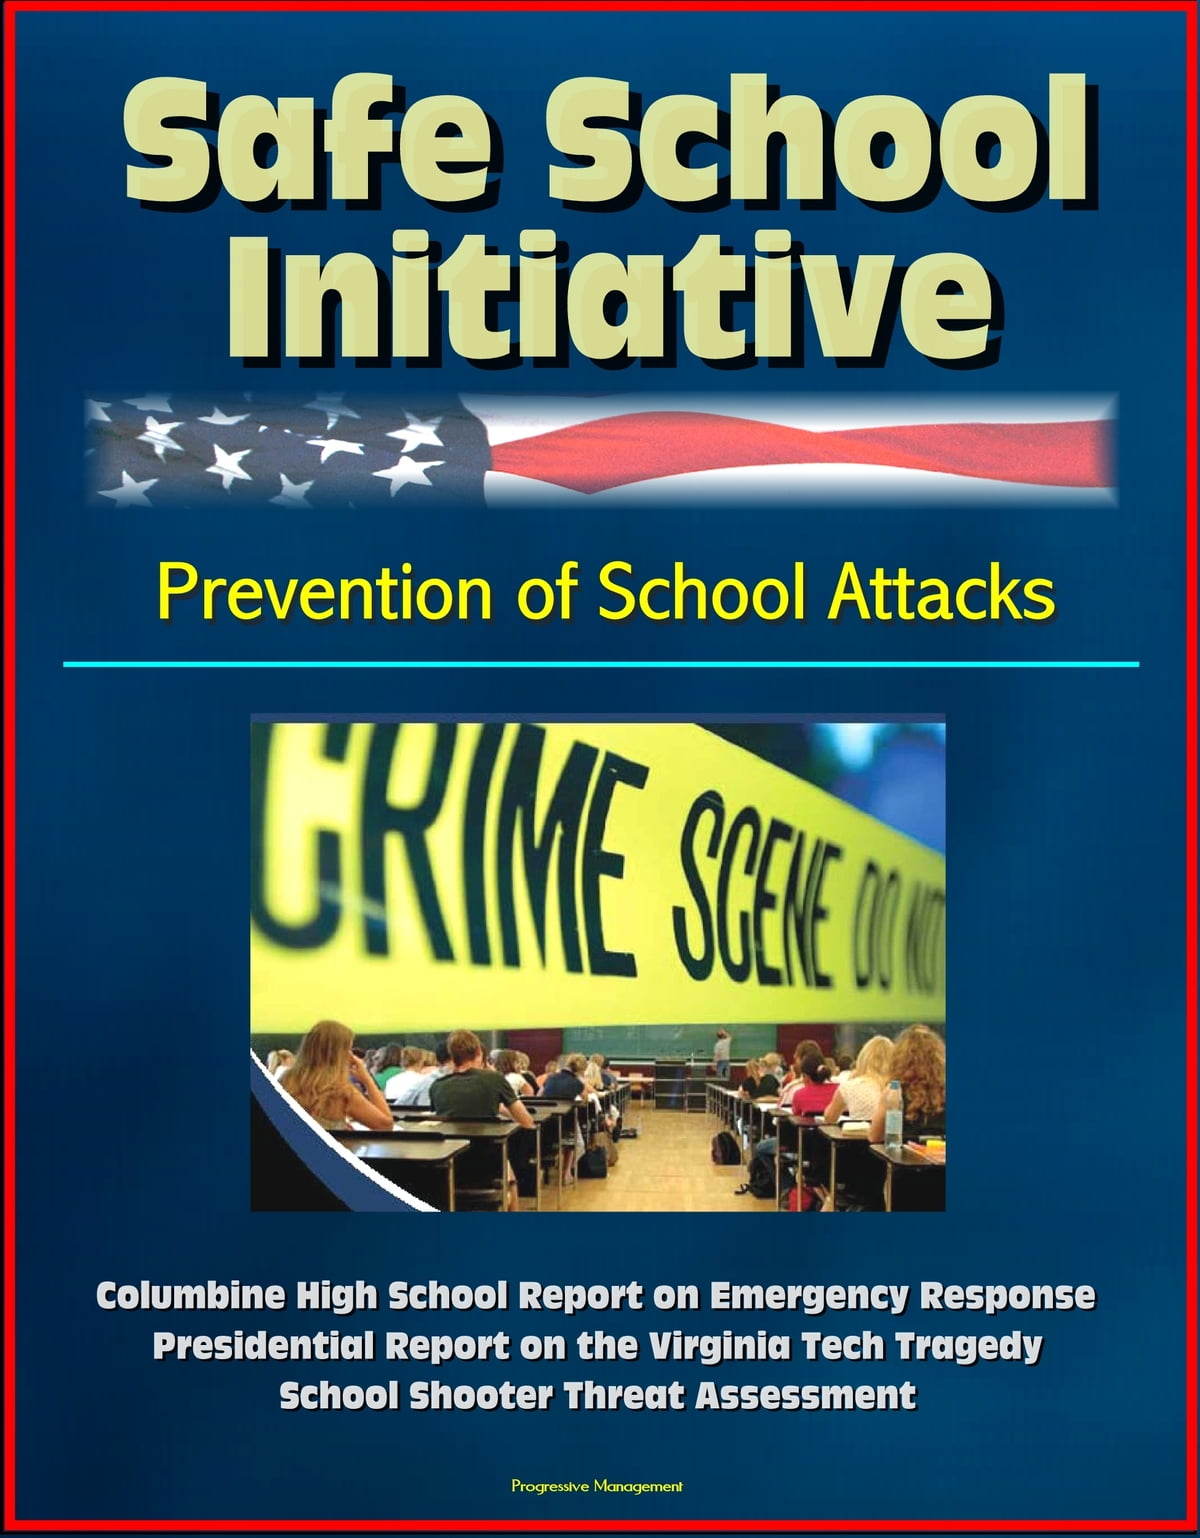 technology to prevent school shootings School shootings can be an overwhelming topic for teachers, so we compiled advice to help prevent gun violence and maintain your sanity in troubling times virginia tech sandy hook it can terrifying to think your school's name could be next on the list school shootings always stun the nation, but.